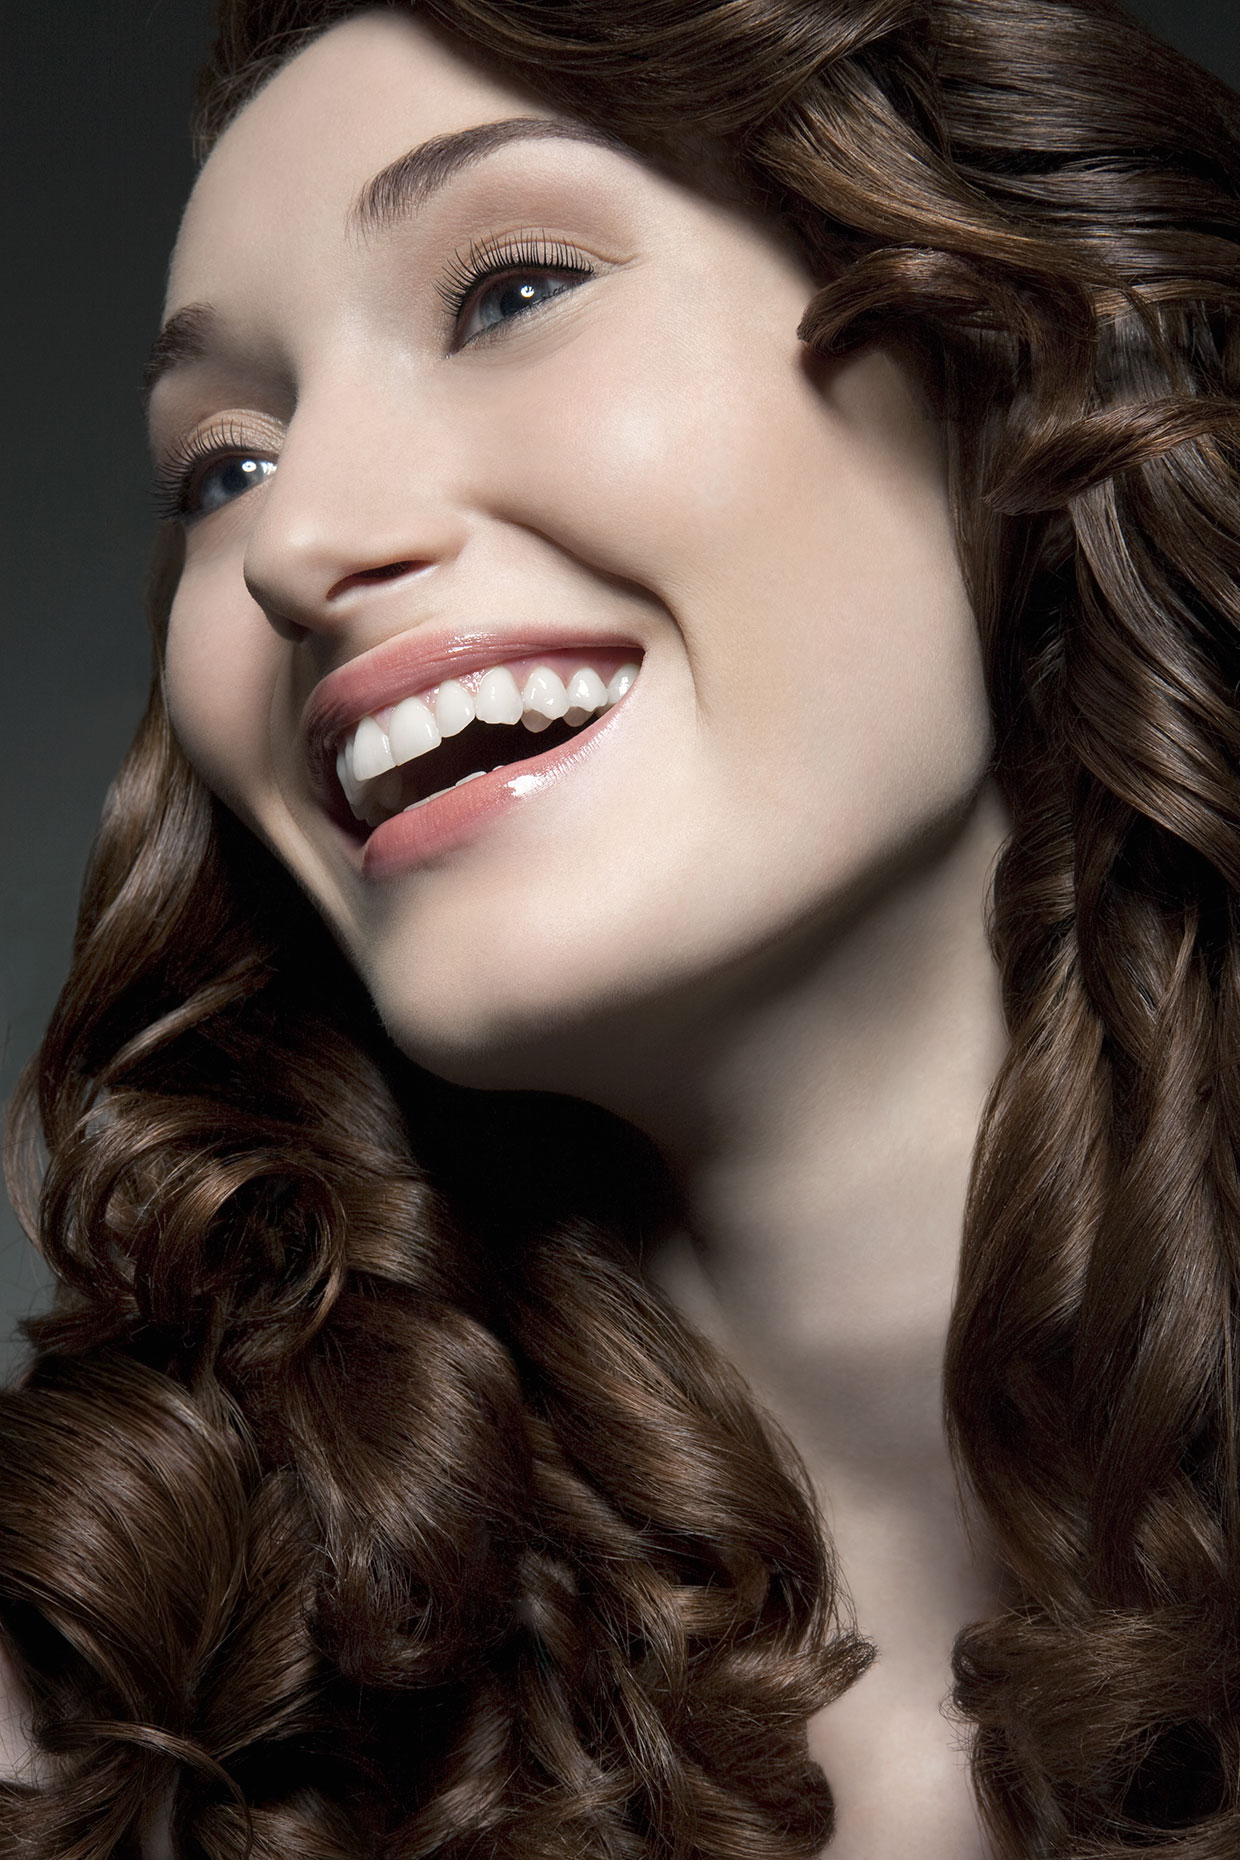 Young woman with shiny hair laughing, portrait.